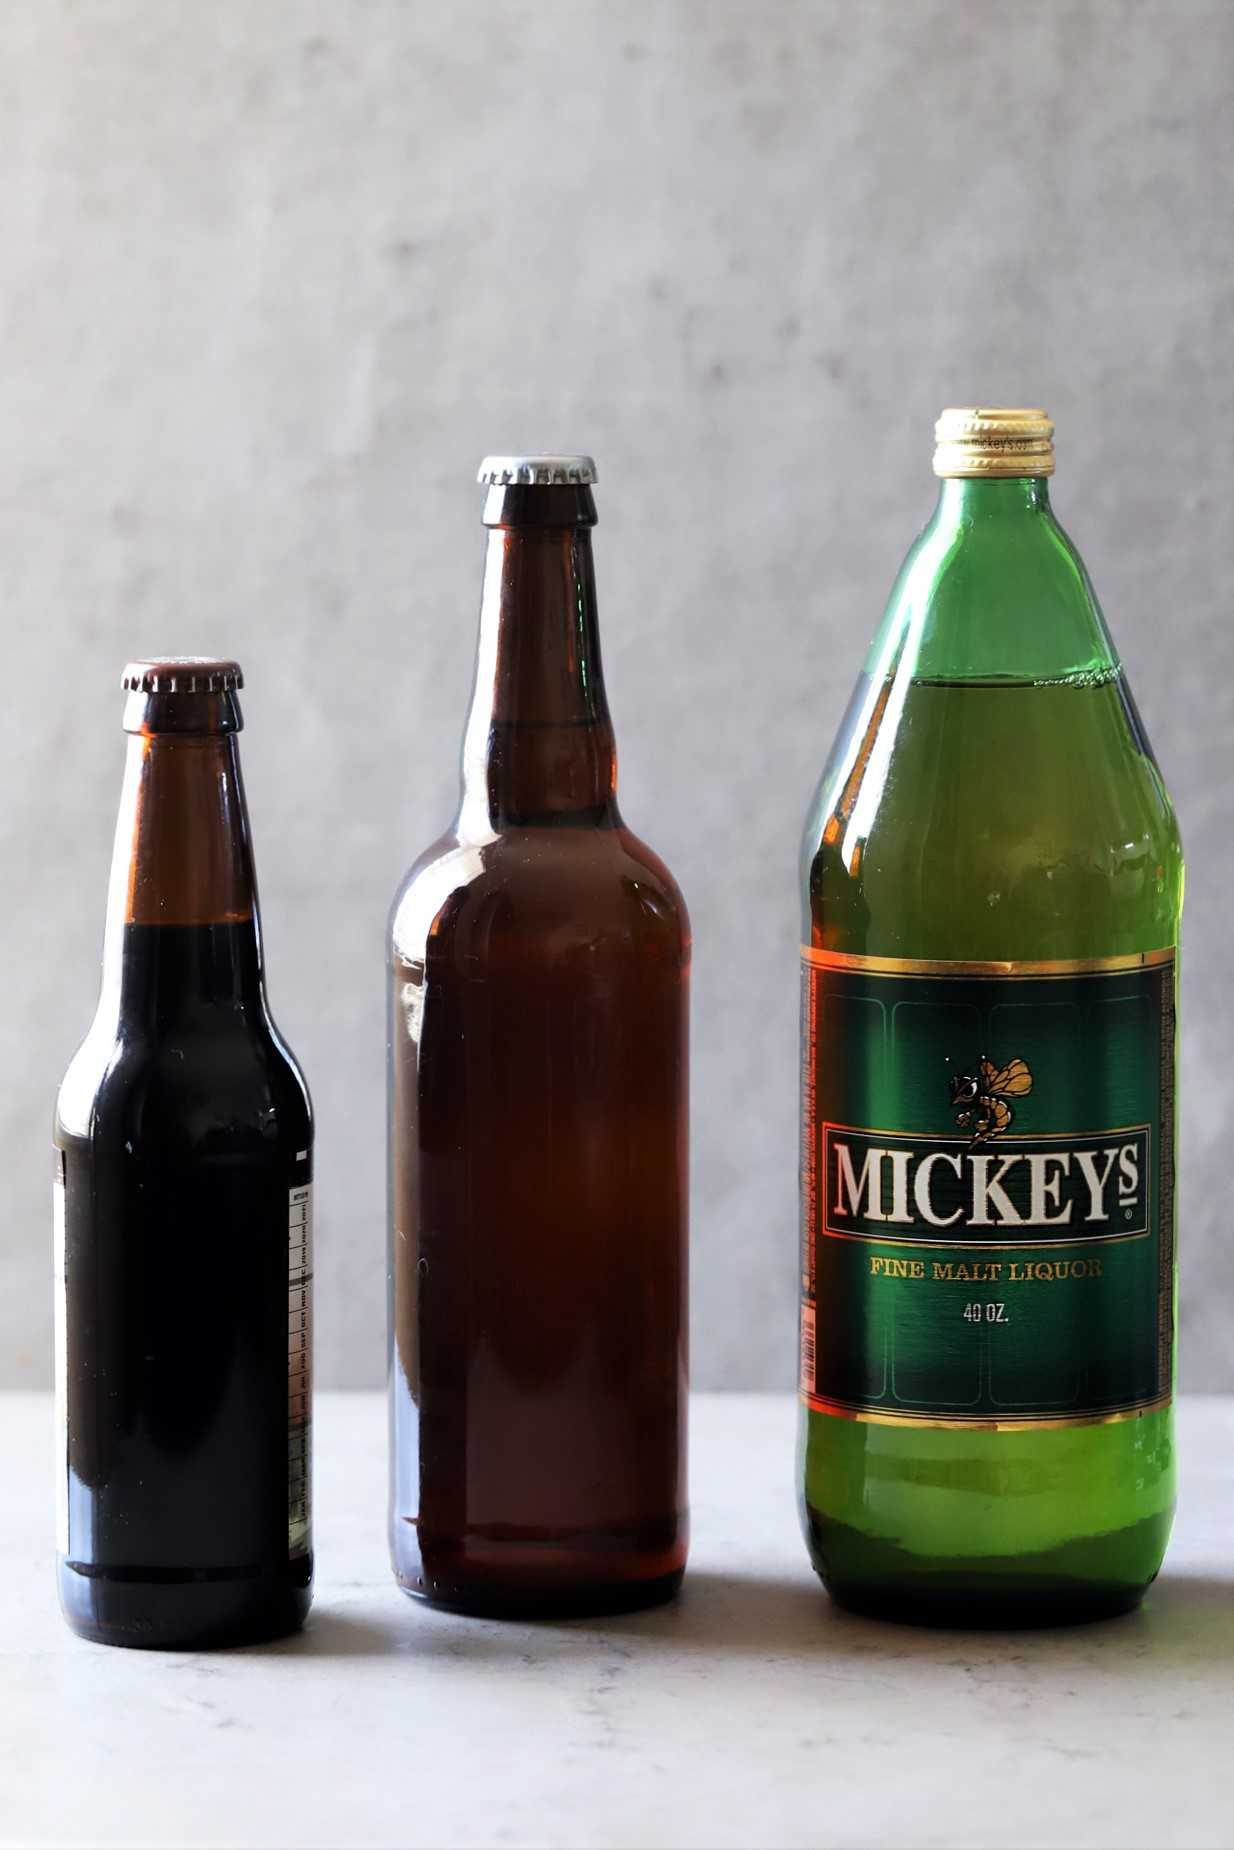 40 ounce malt liquor next to a pint beer bottle and a 12 oz beer bottle.